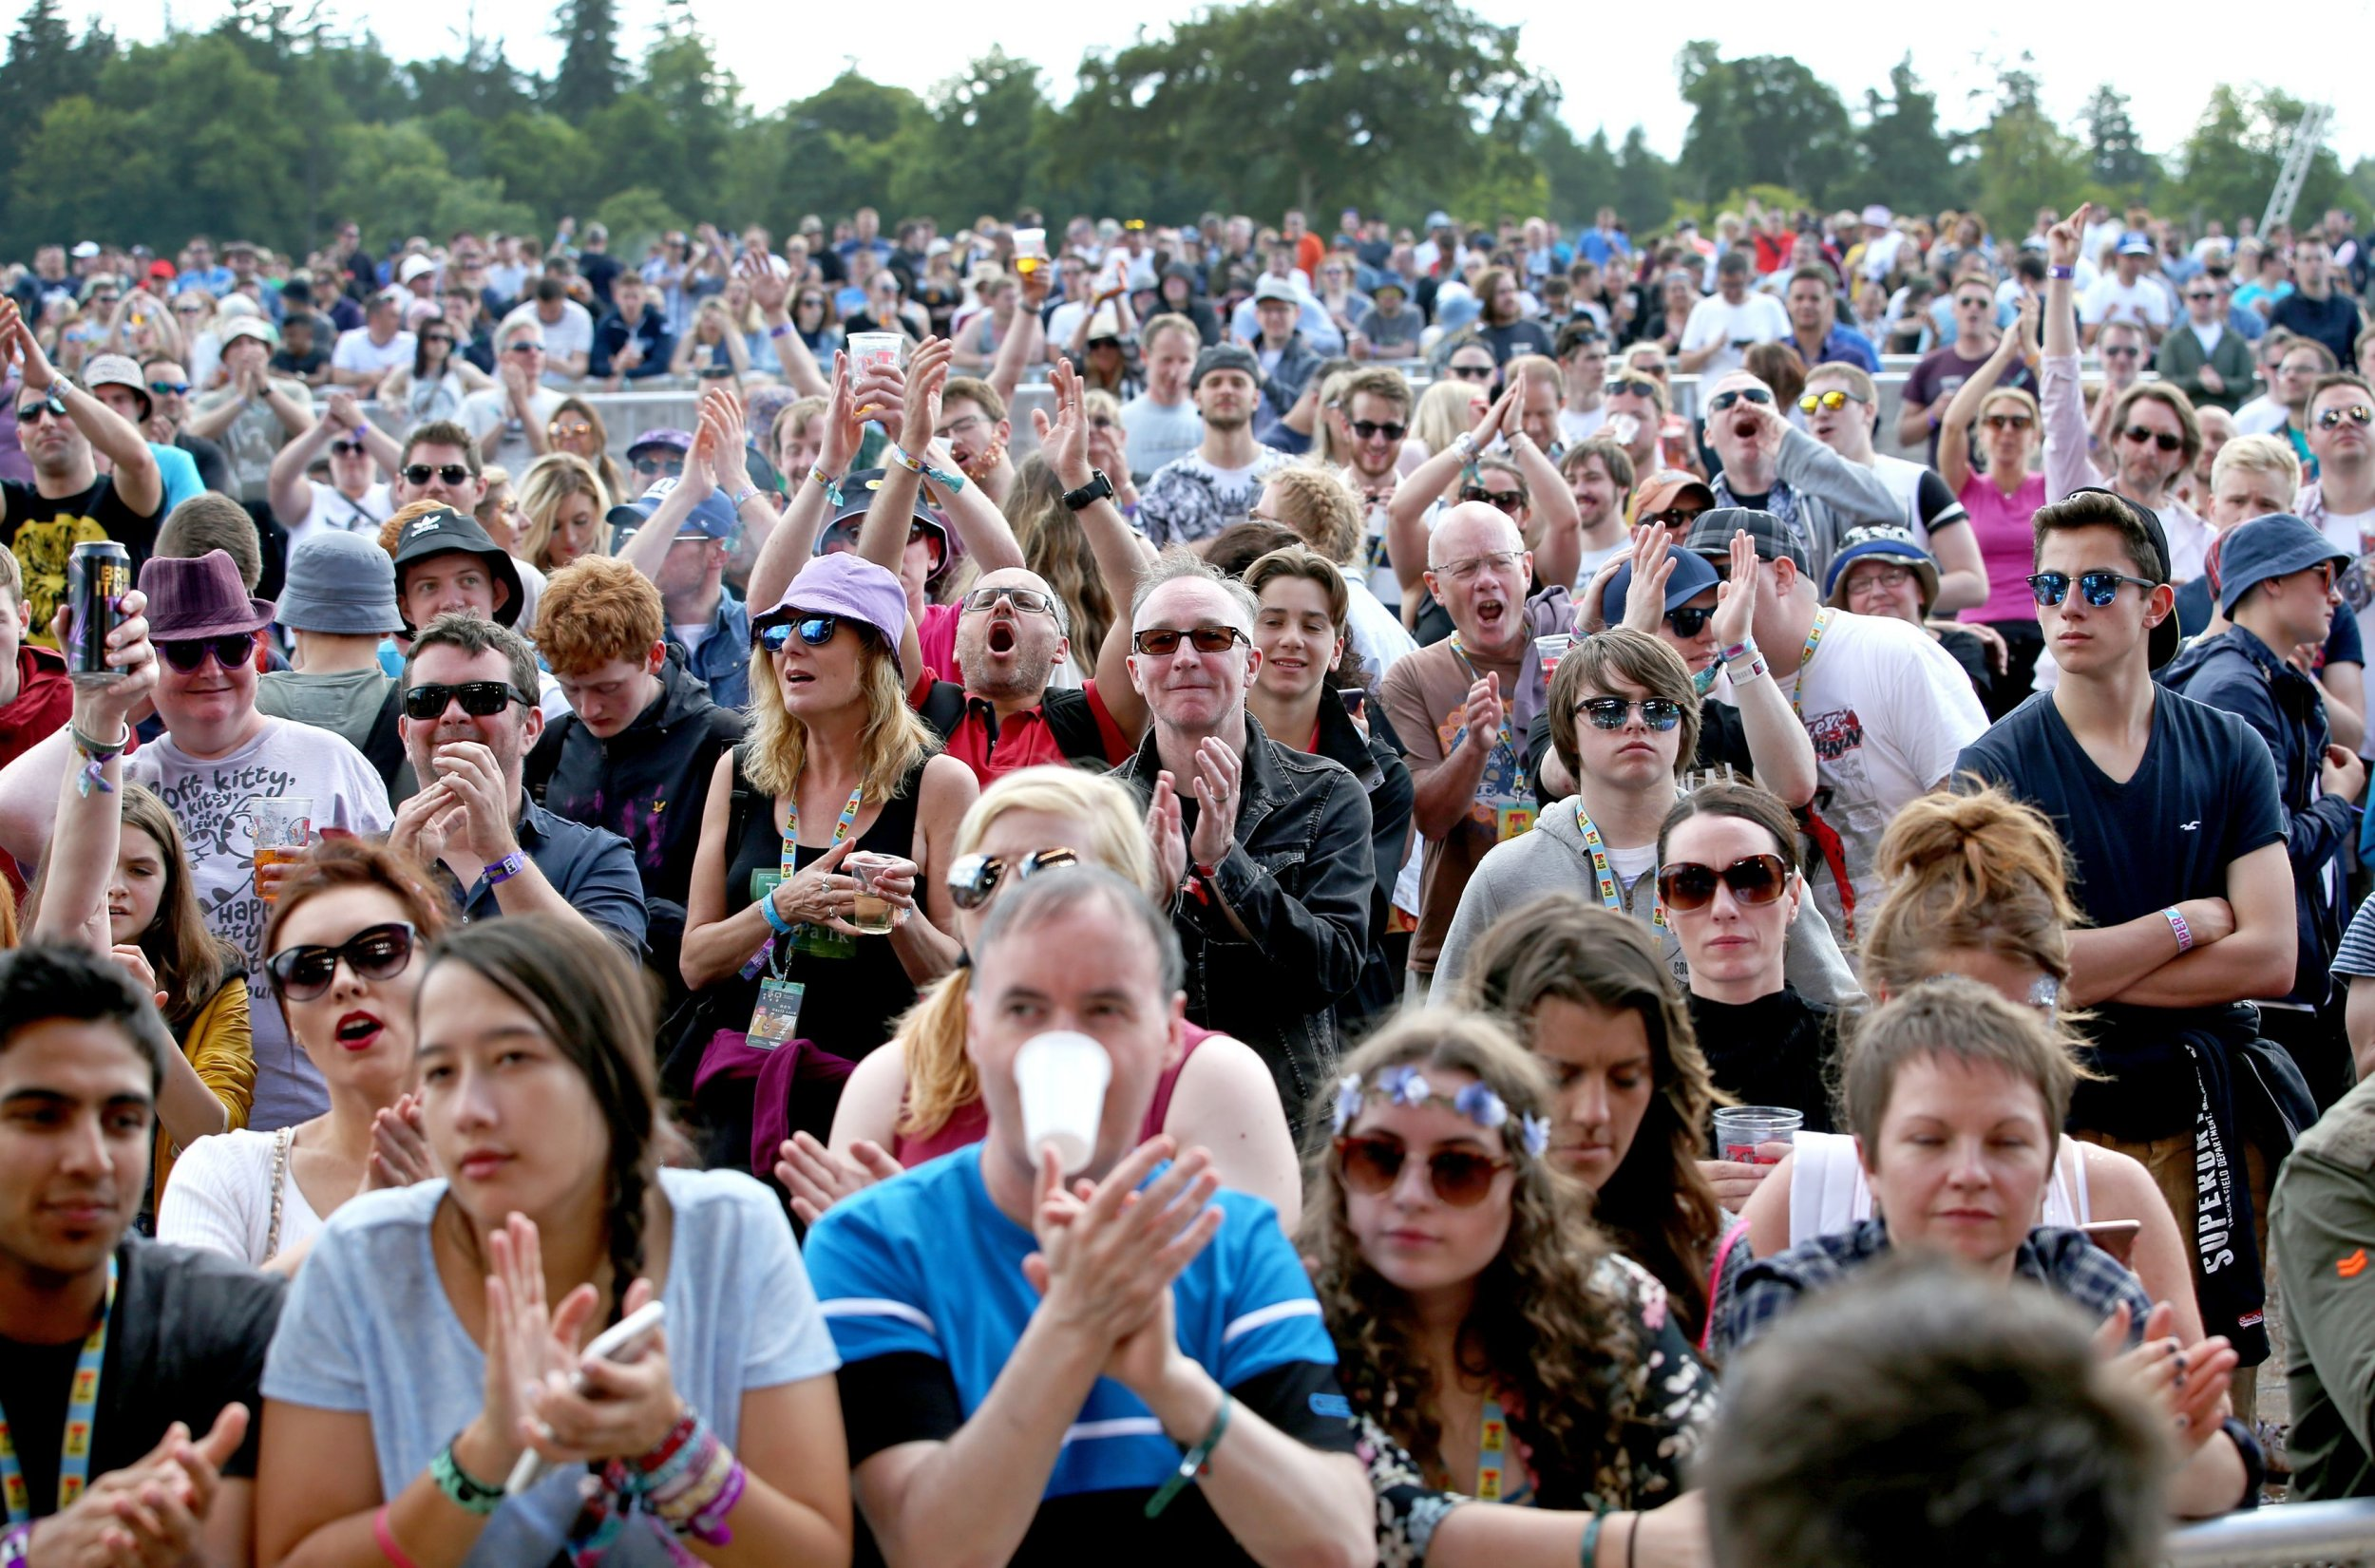 Festivalgoers watch the Fun Lovin' Criminals, on the main stage at T in the Park, the annual music festival held at Strathallan Castle, Perthshire. PRESS ASSOCIATION Photo. Picture date: Friday July 8, 2016. See PA story SHOWBIZ Festival. Photo credit should read: Jane Barlow/PA Wire